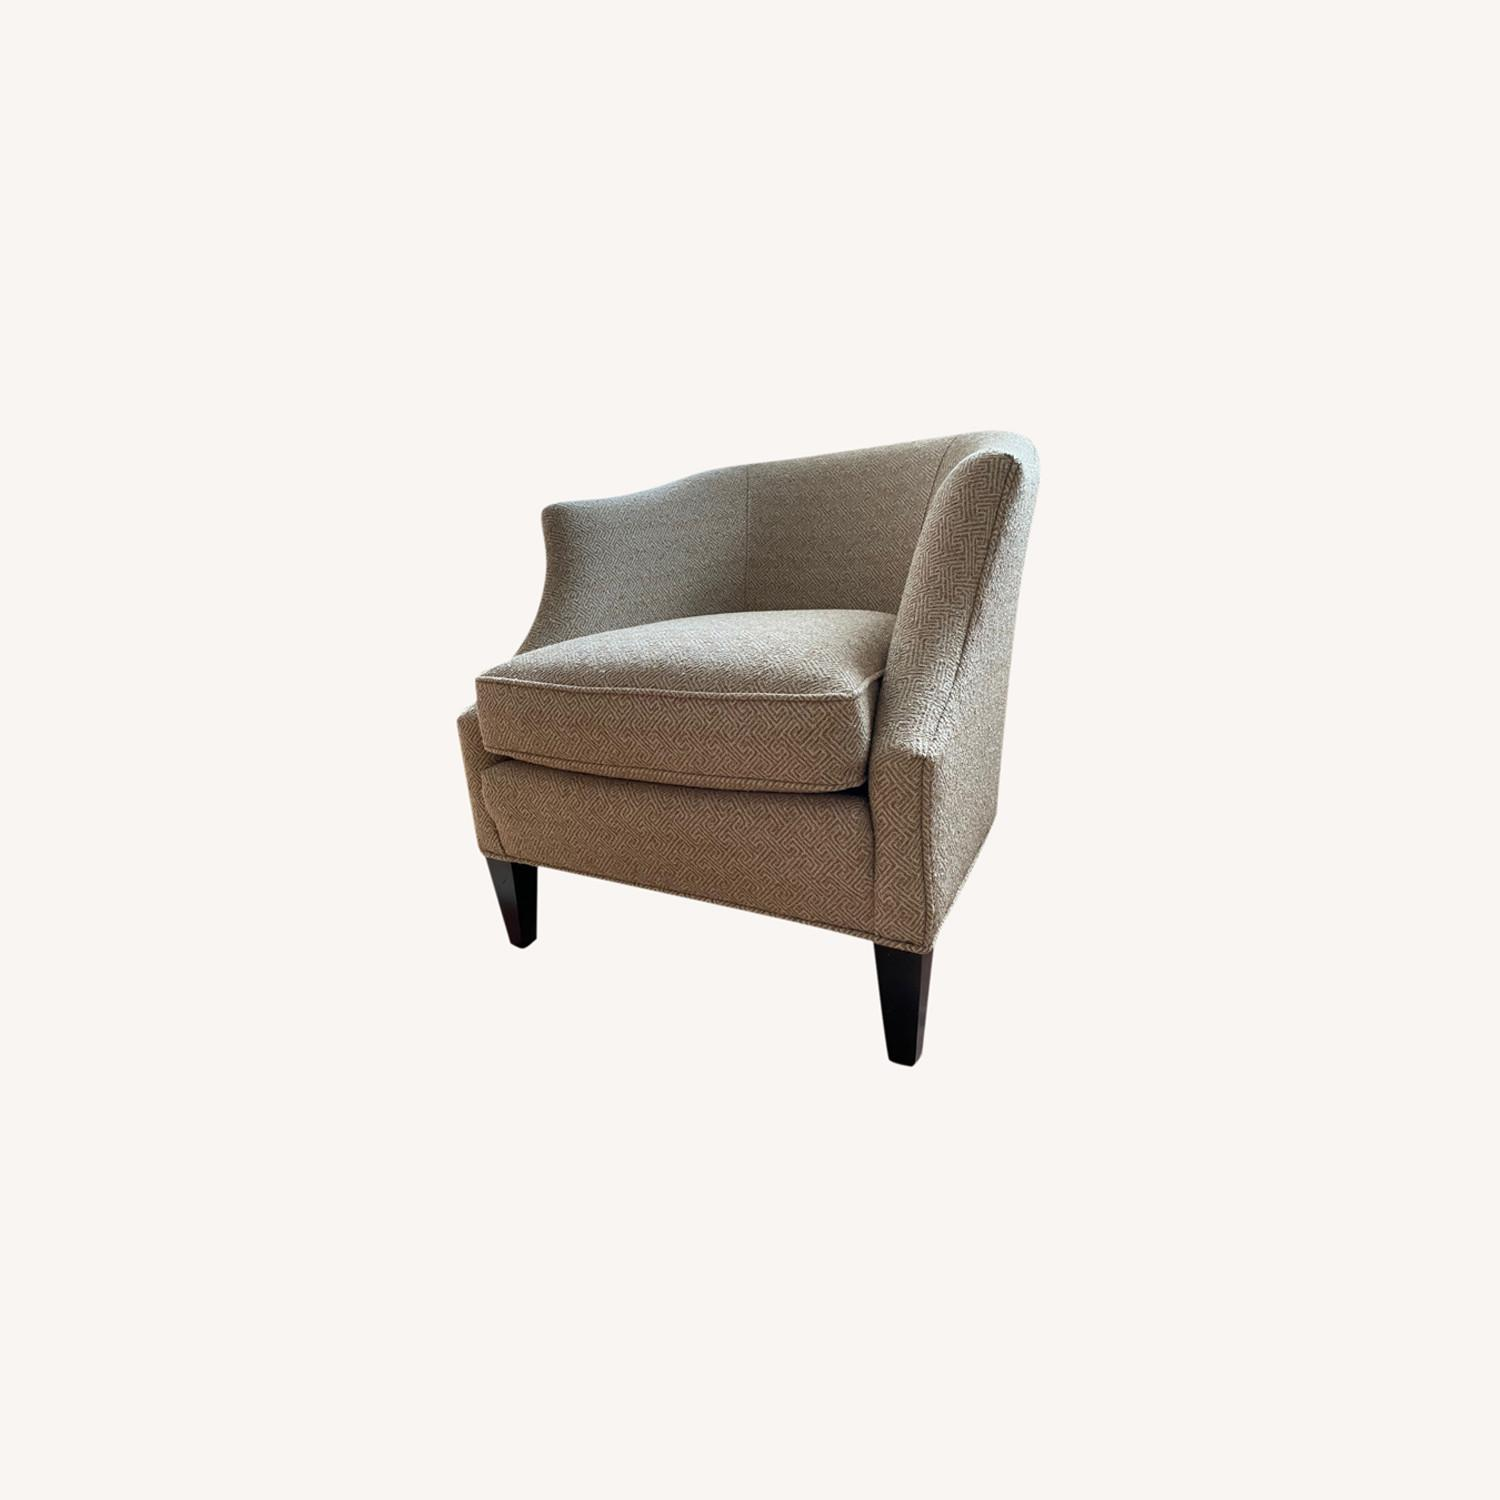 Brown Geometric Patterned Chair - image-0